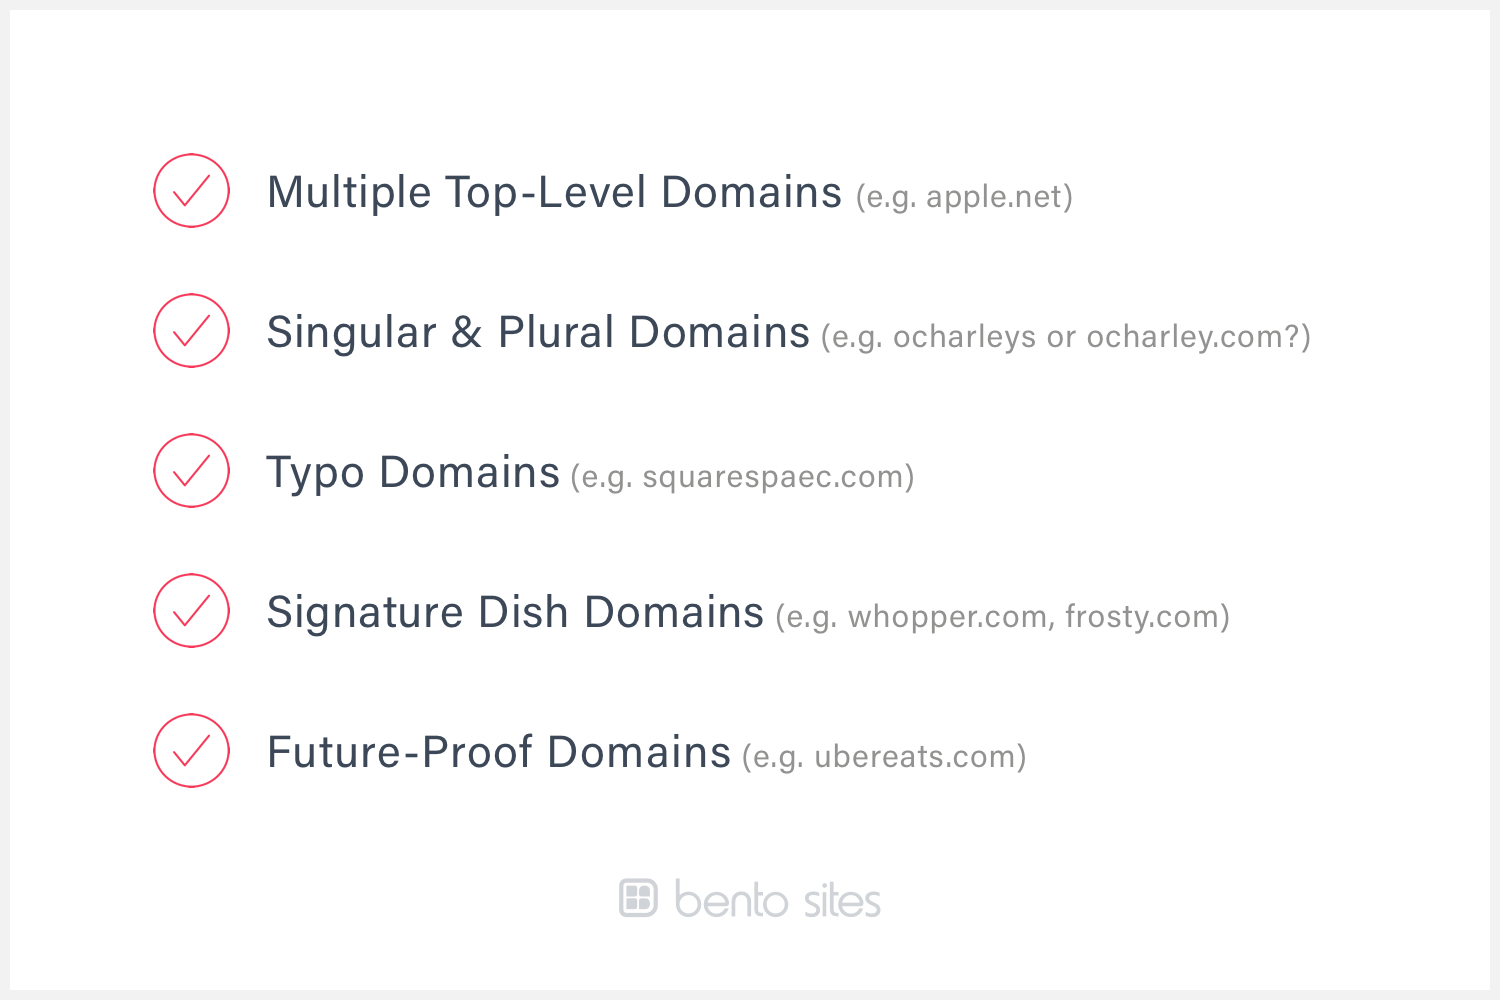 A checklist that describes the kinds of domains to register